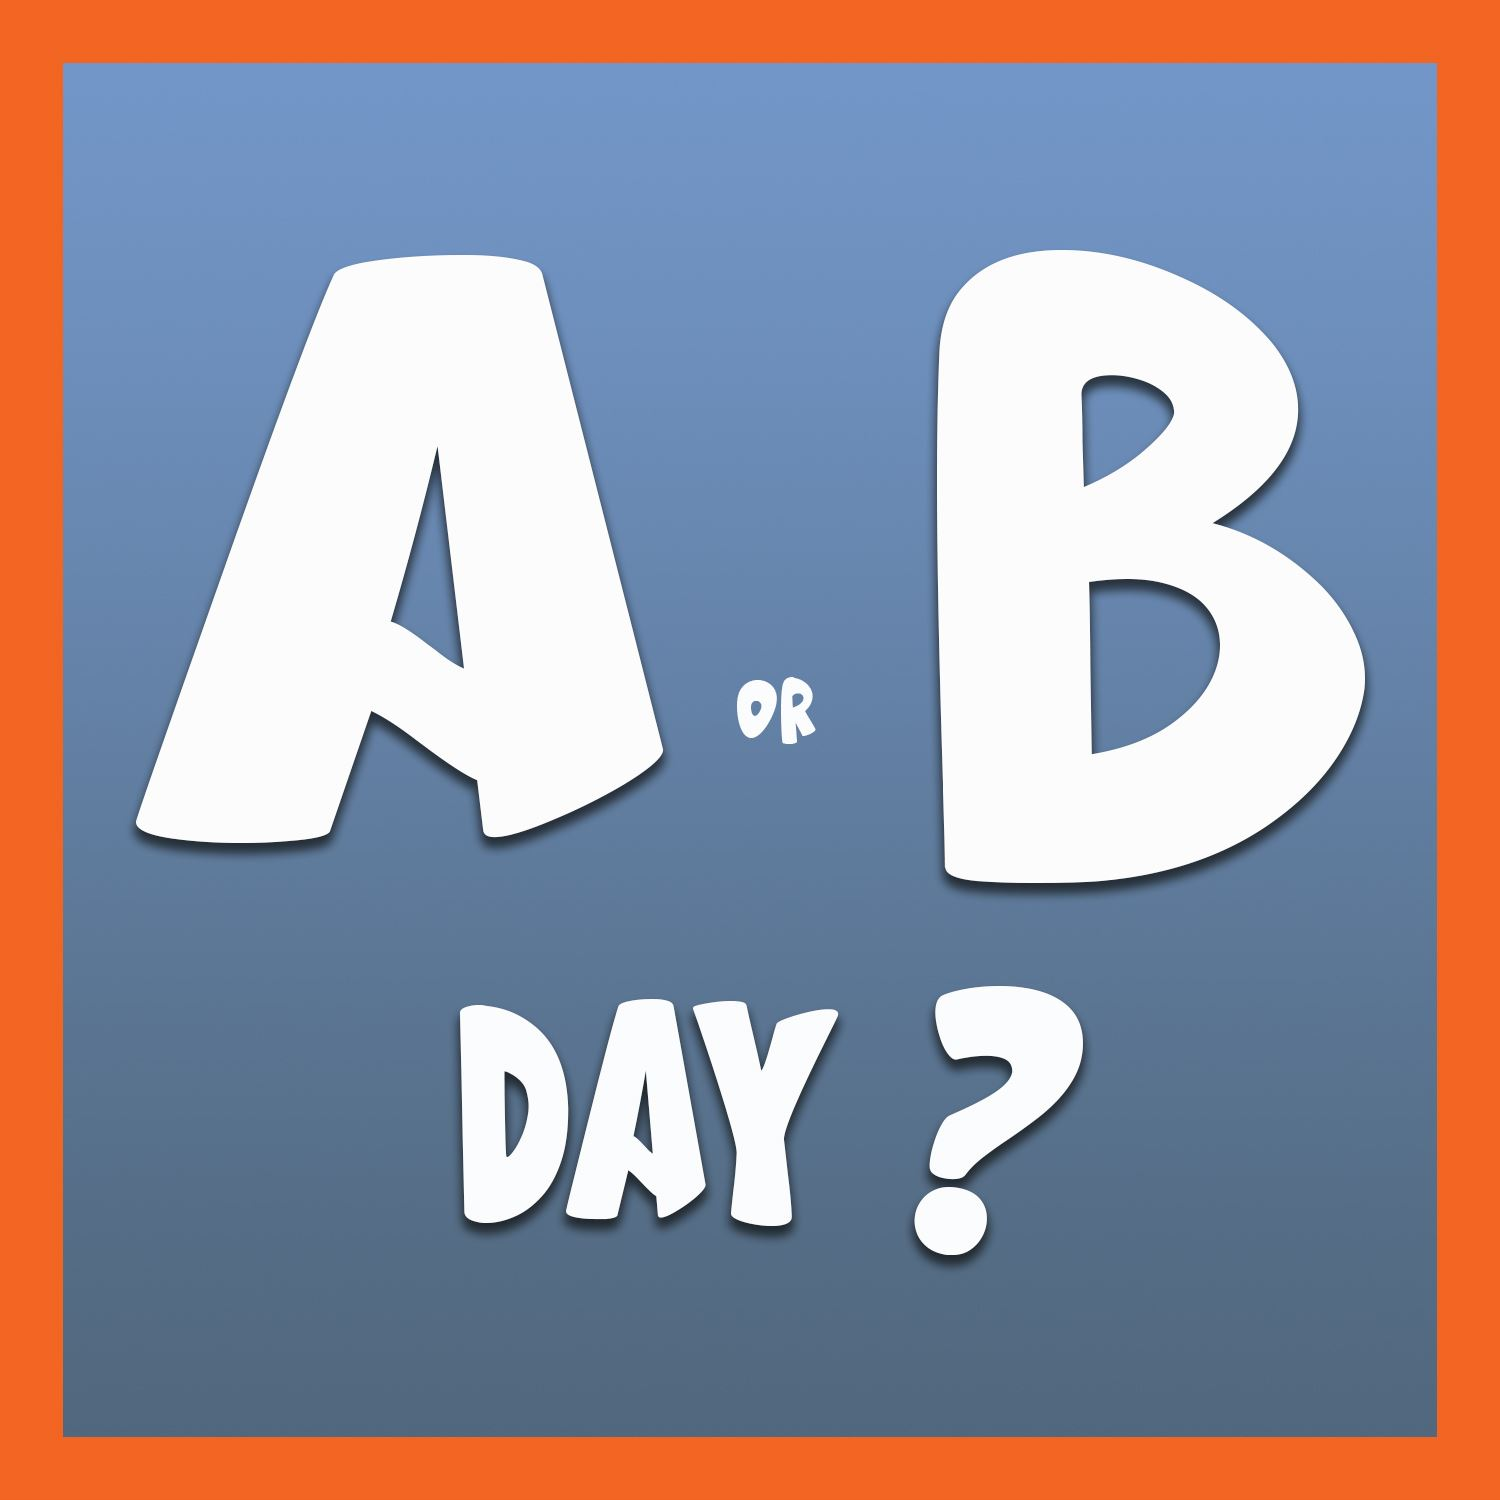 A or B day?